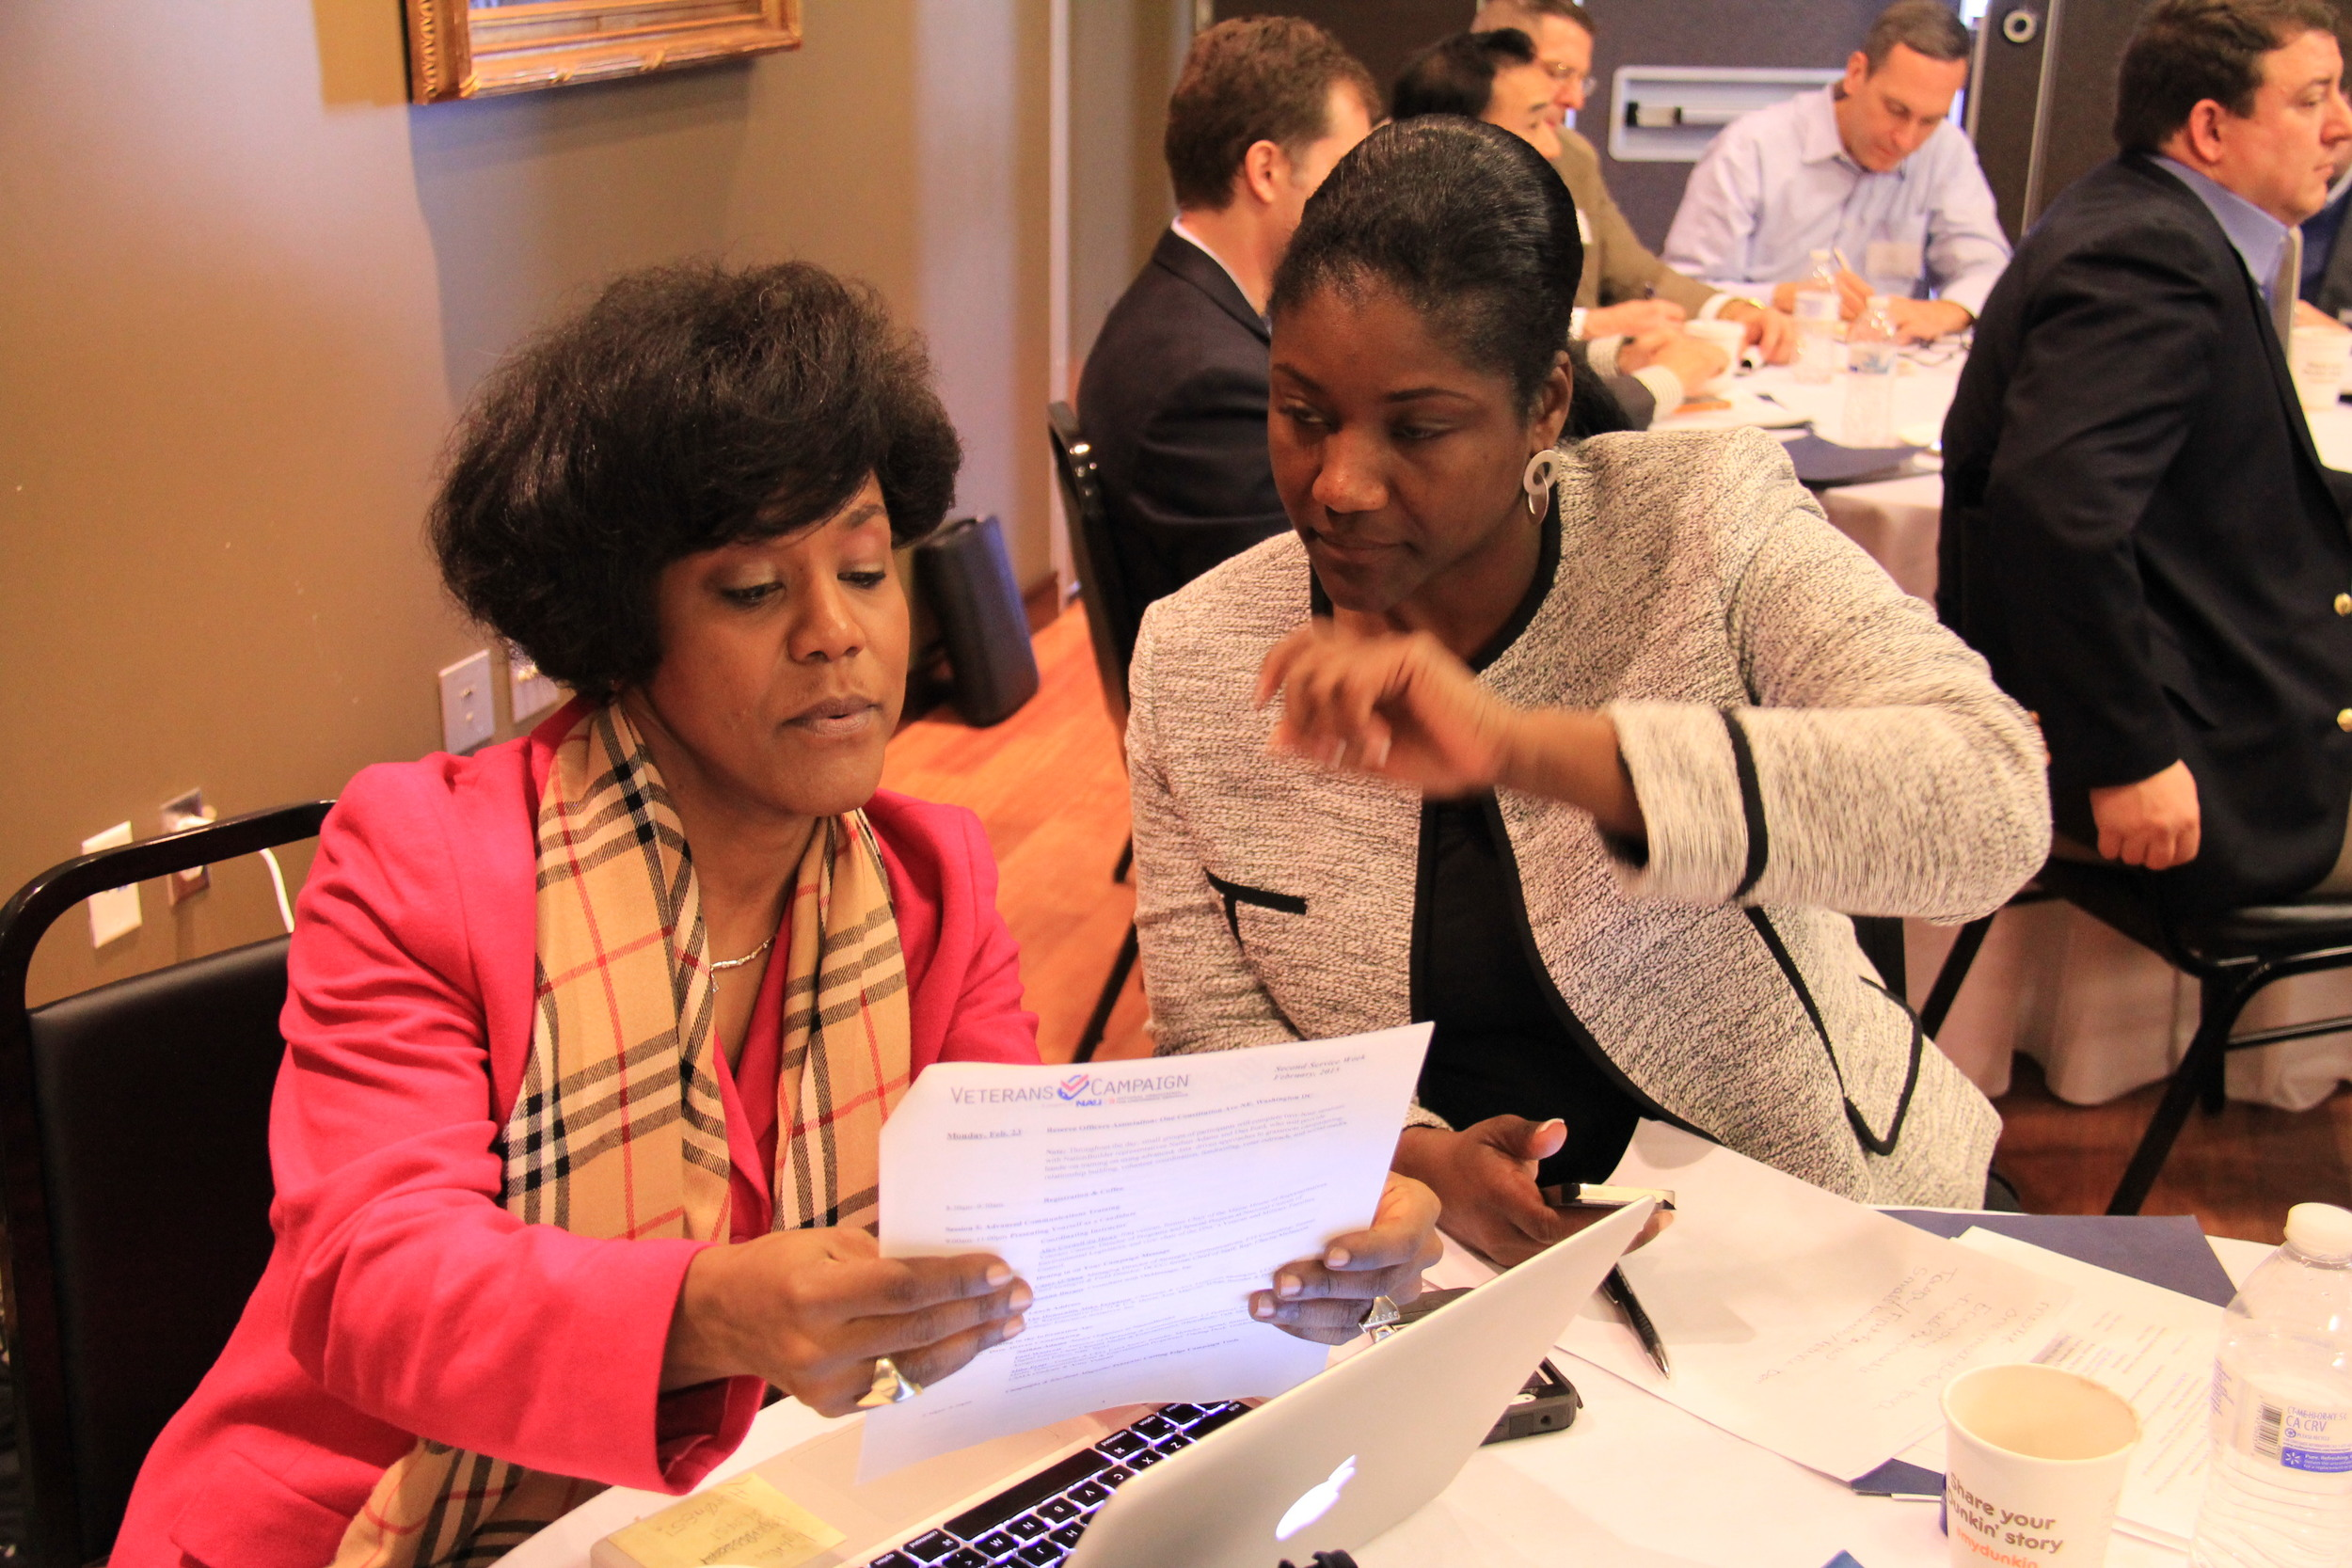 Civic activist and campaign manager Simone Lightfoot reviews communications and messaging plans